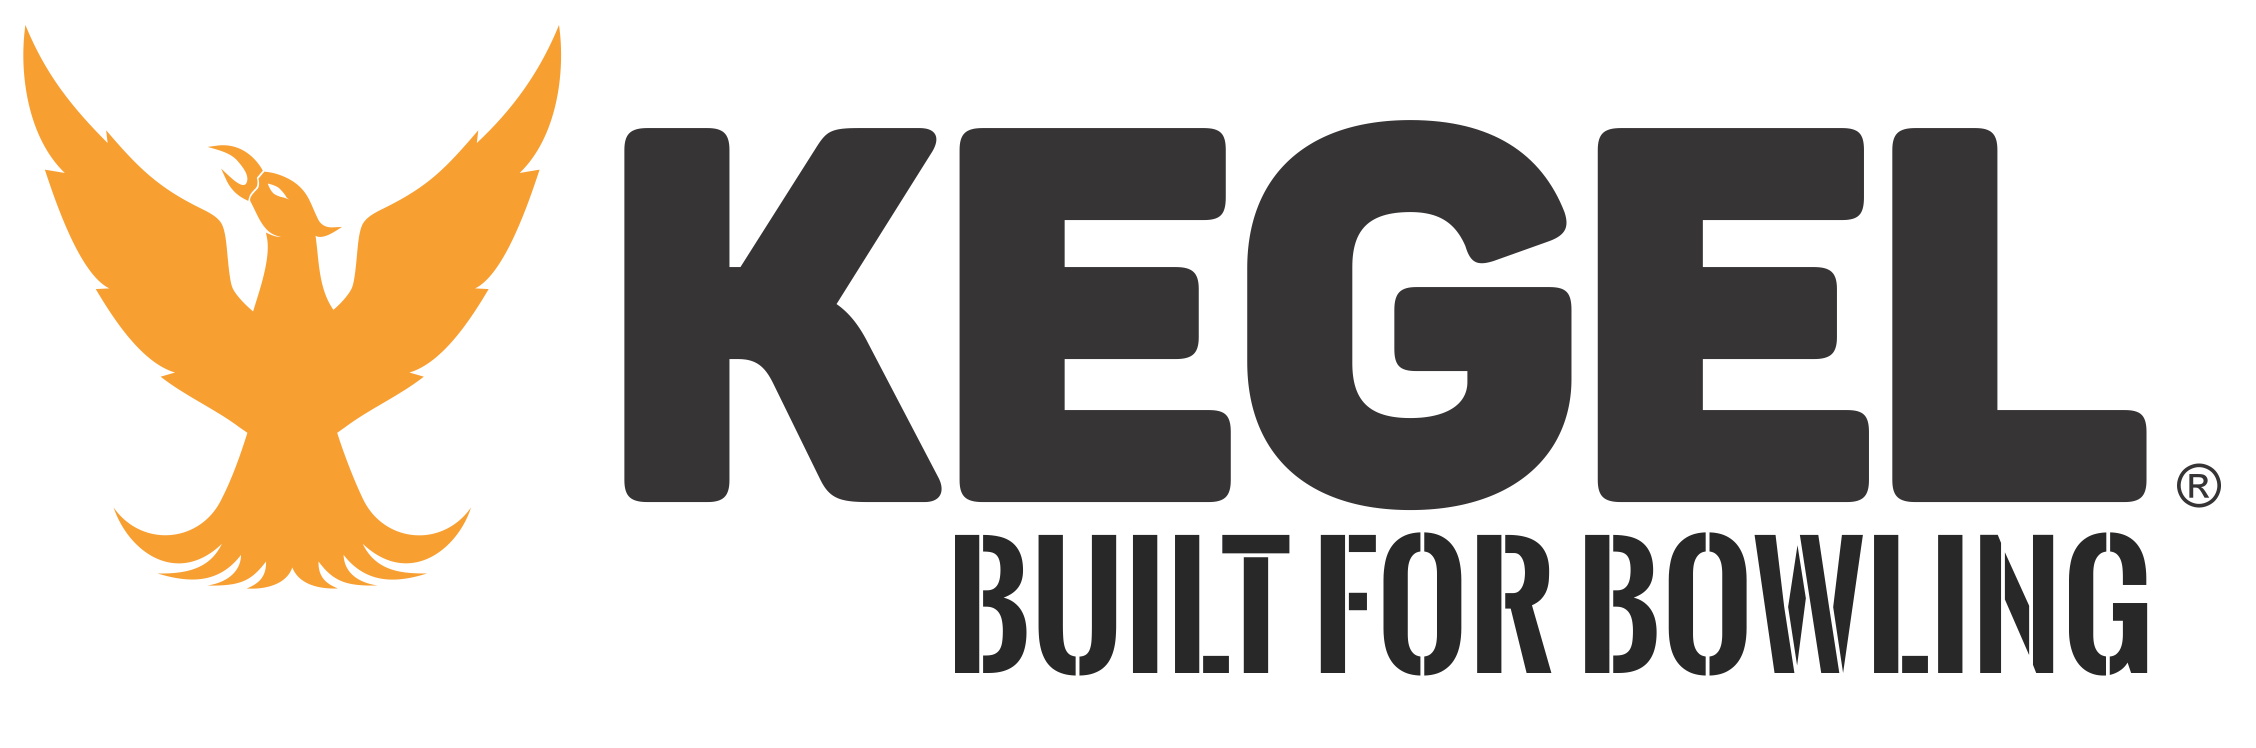 KEGEL - Built for Bowling